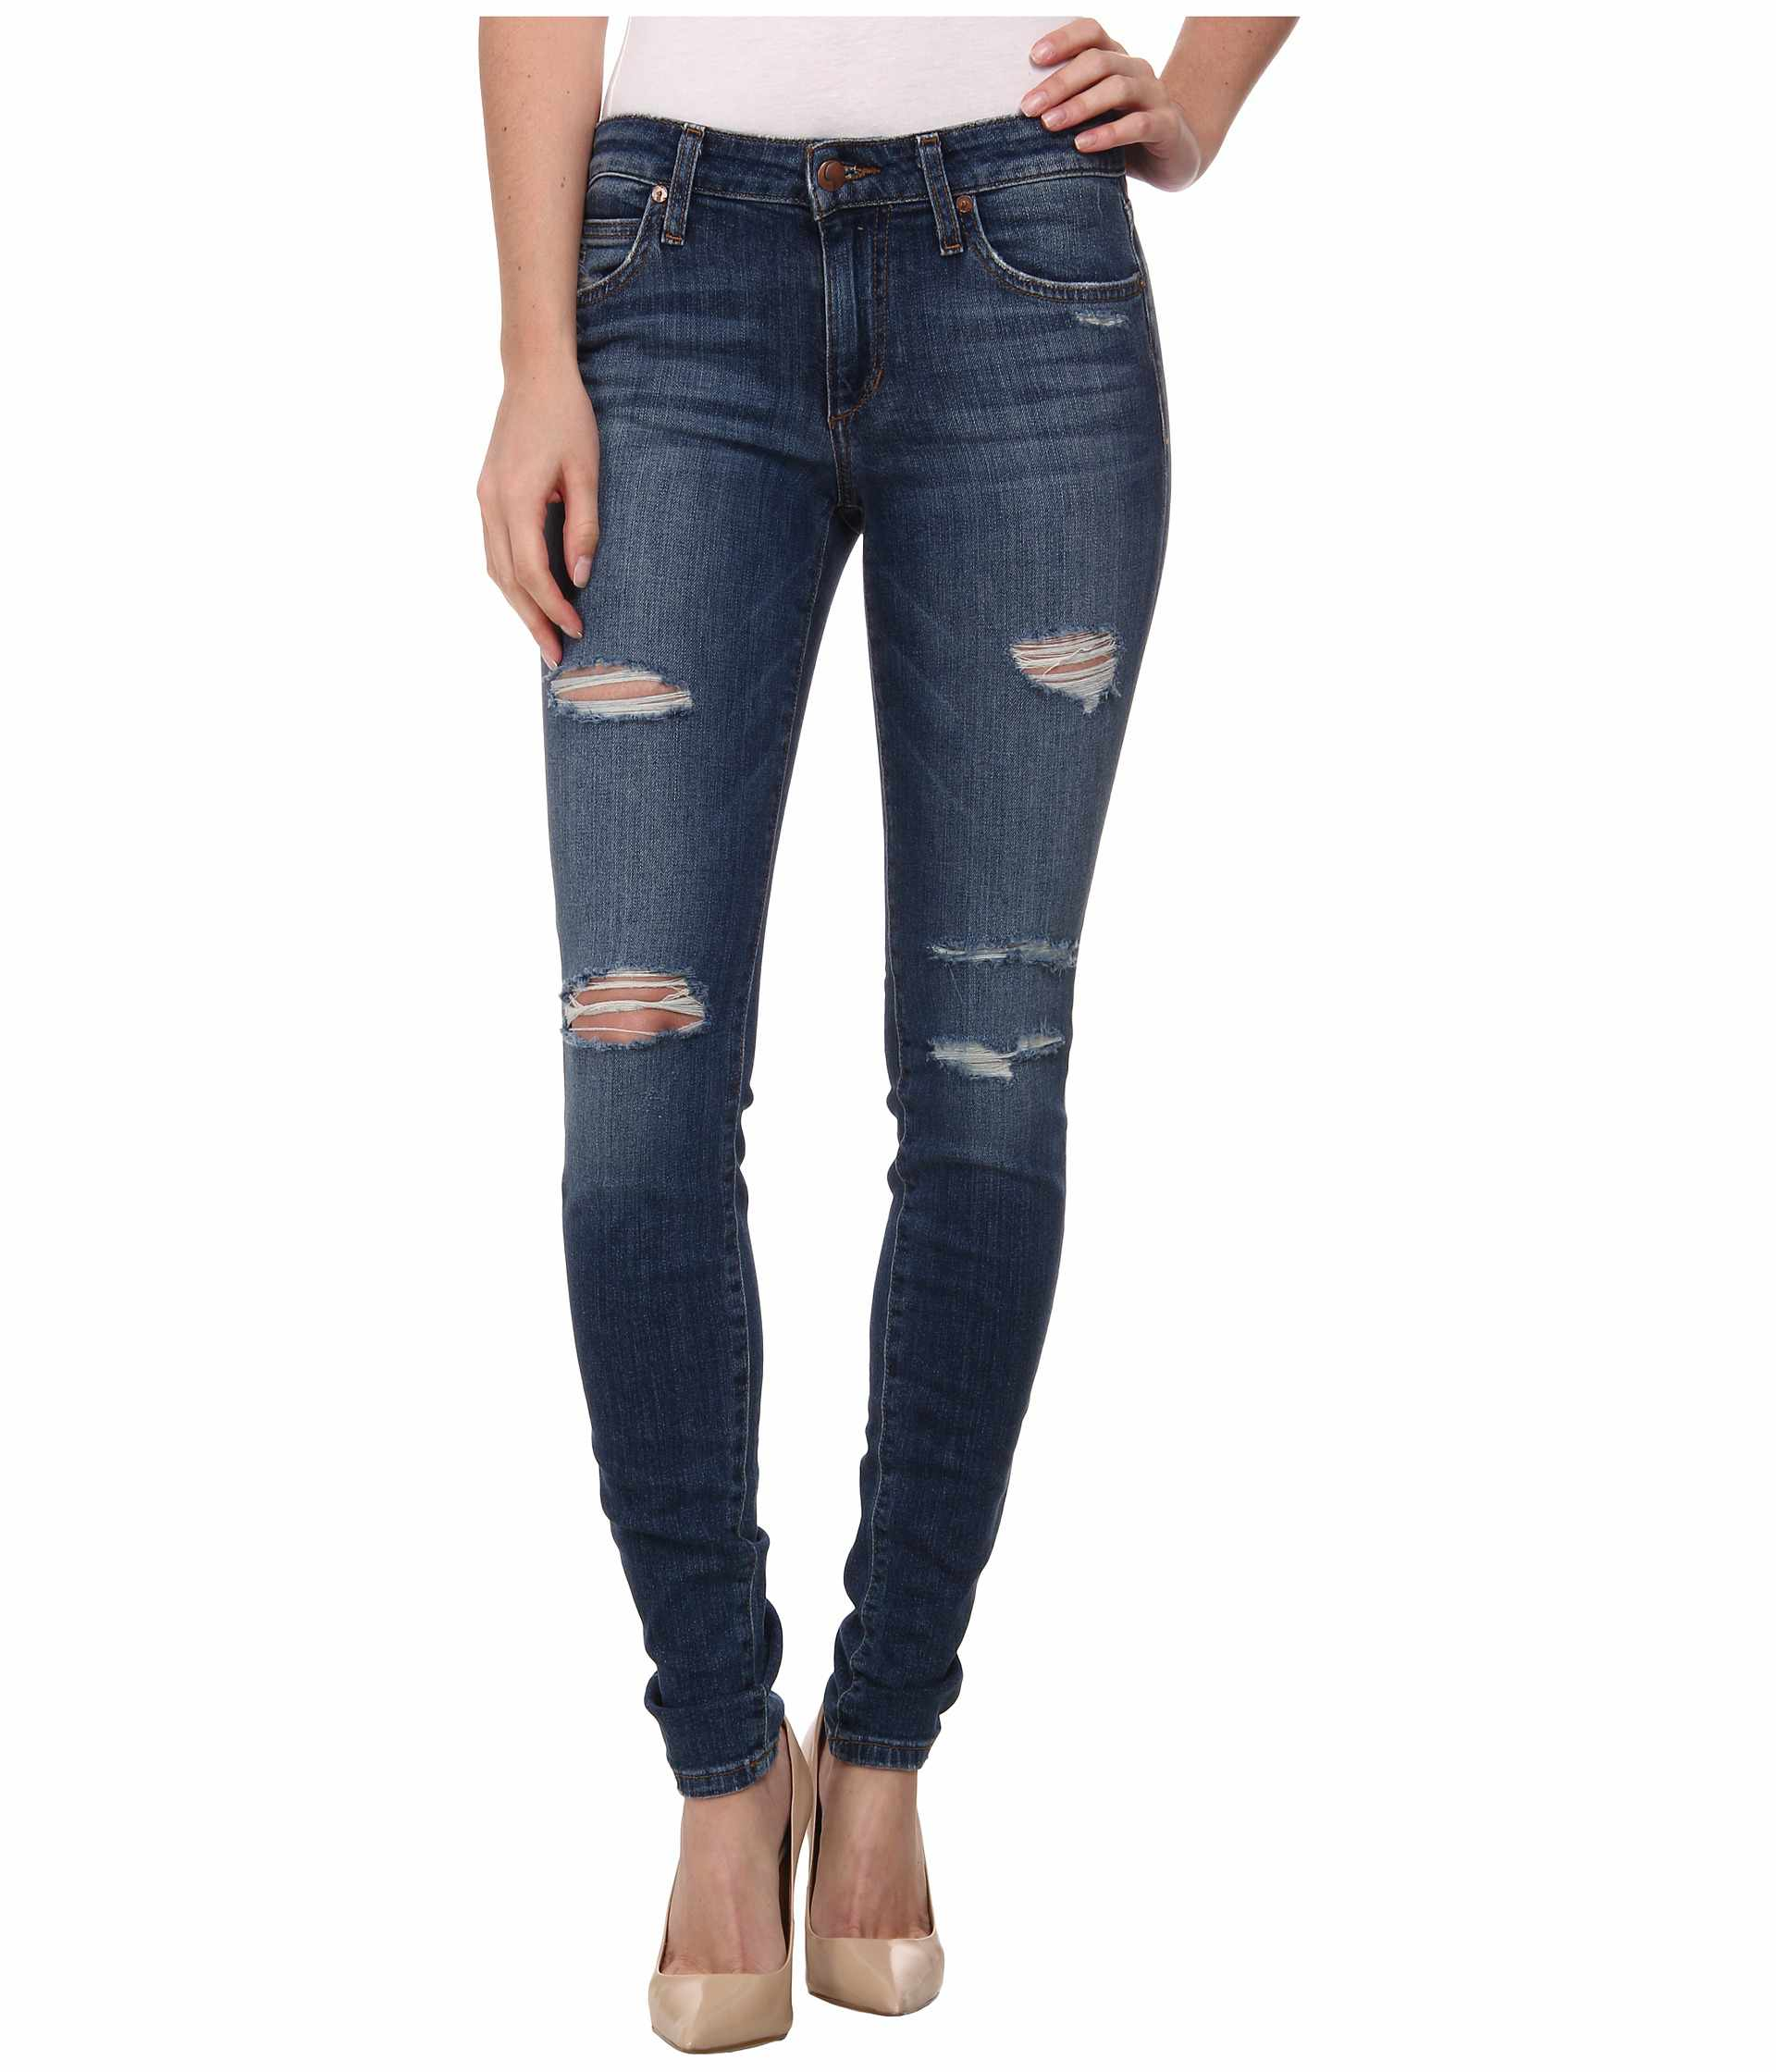 4cd01e3204c Jeans That Look Great on Short Women and Petites